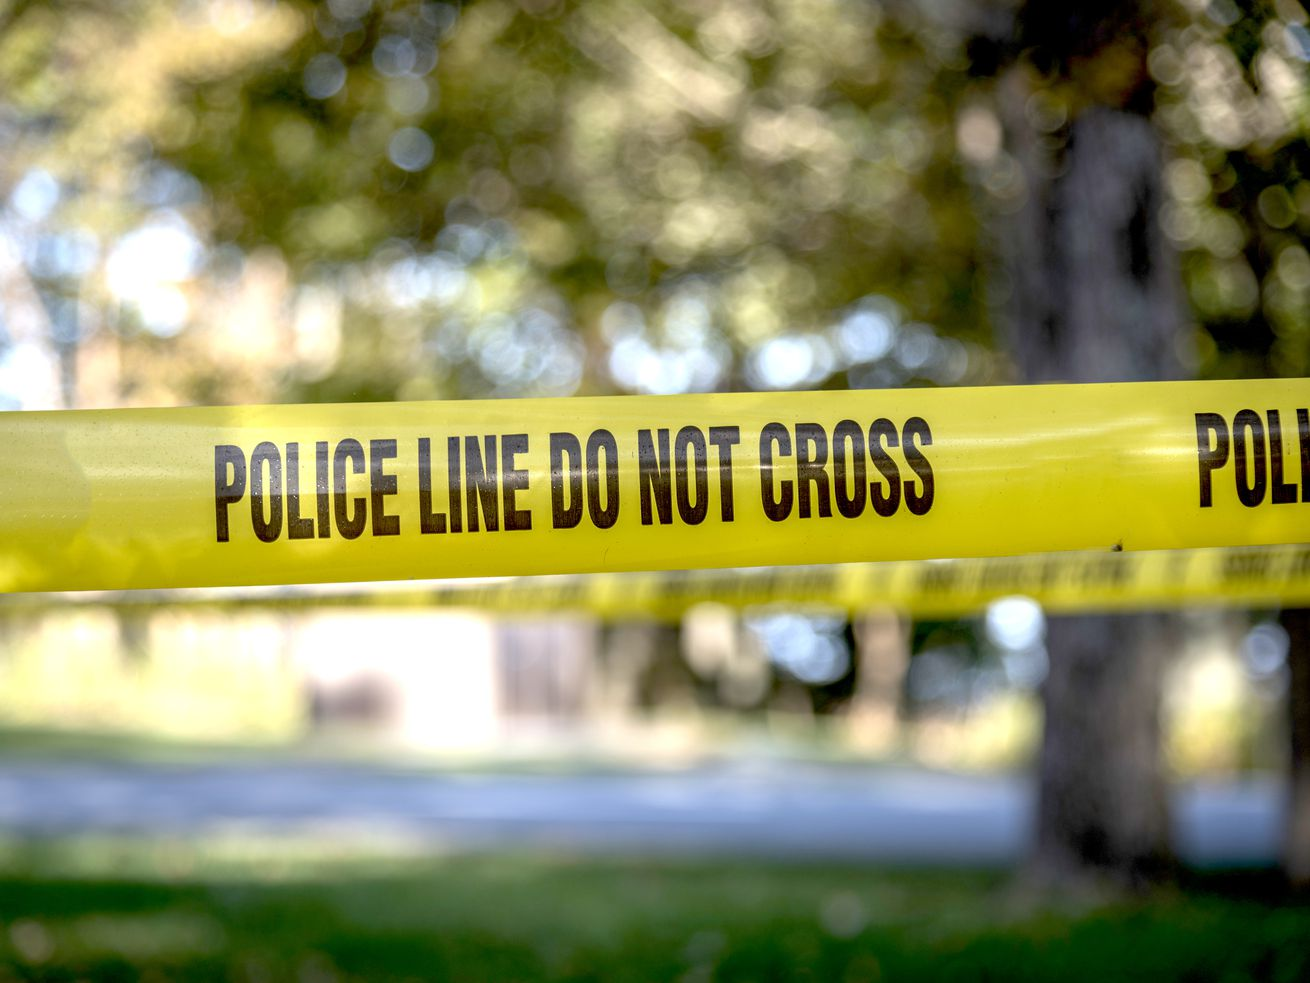 Gary officers shoot homicide suspect during gun battle: police